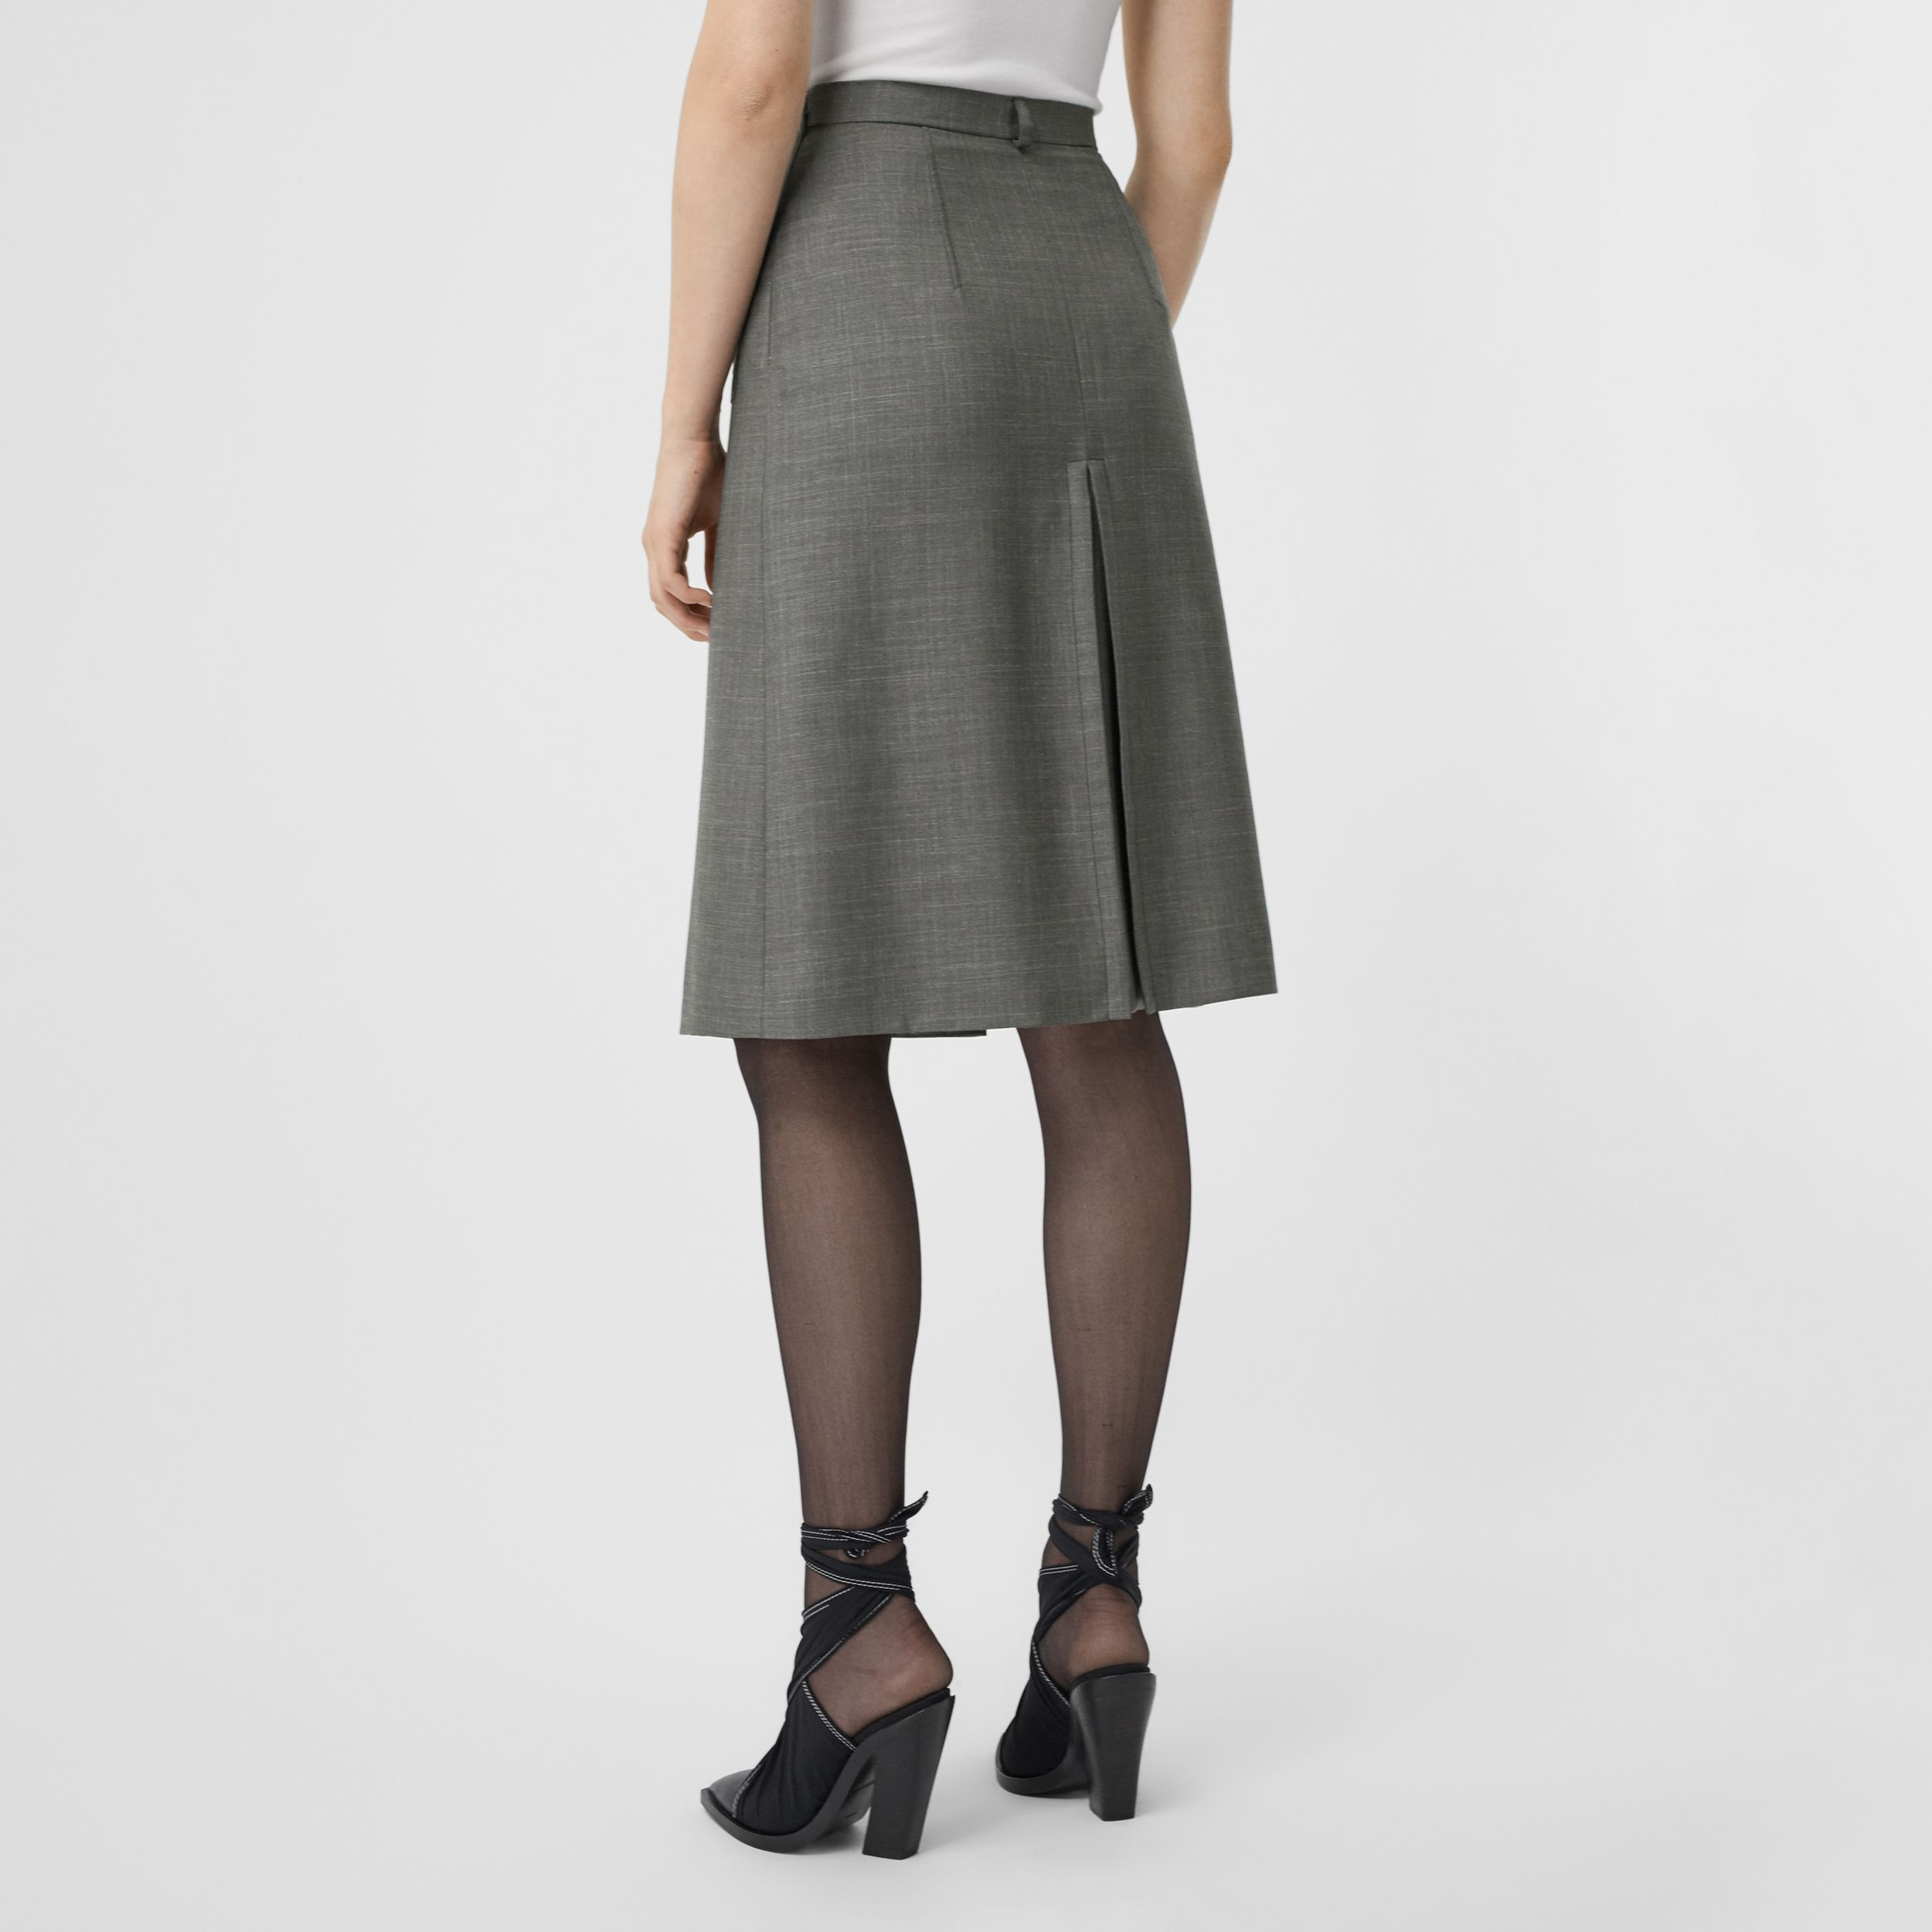 Box-pleat Detail Wool Silk Blend A-line Skirt in Charcoal Grey - Women | Burberry - 3